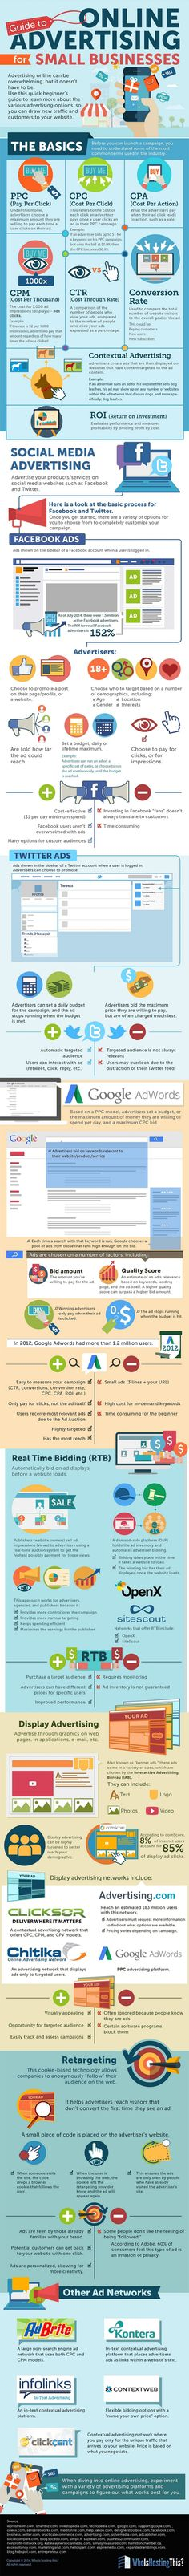 Online Advertising Guide for Small Business.